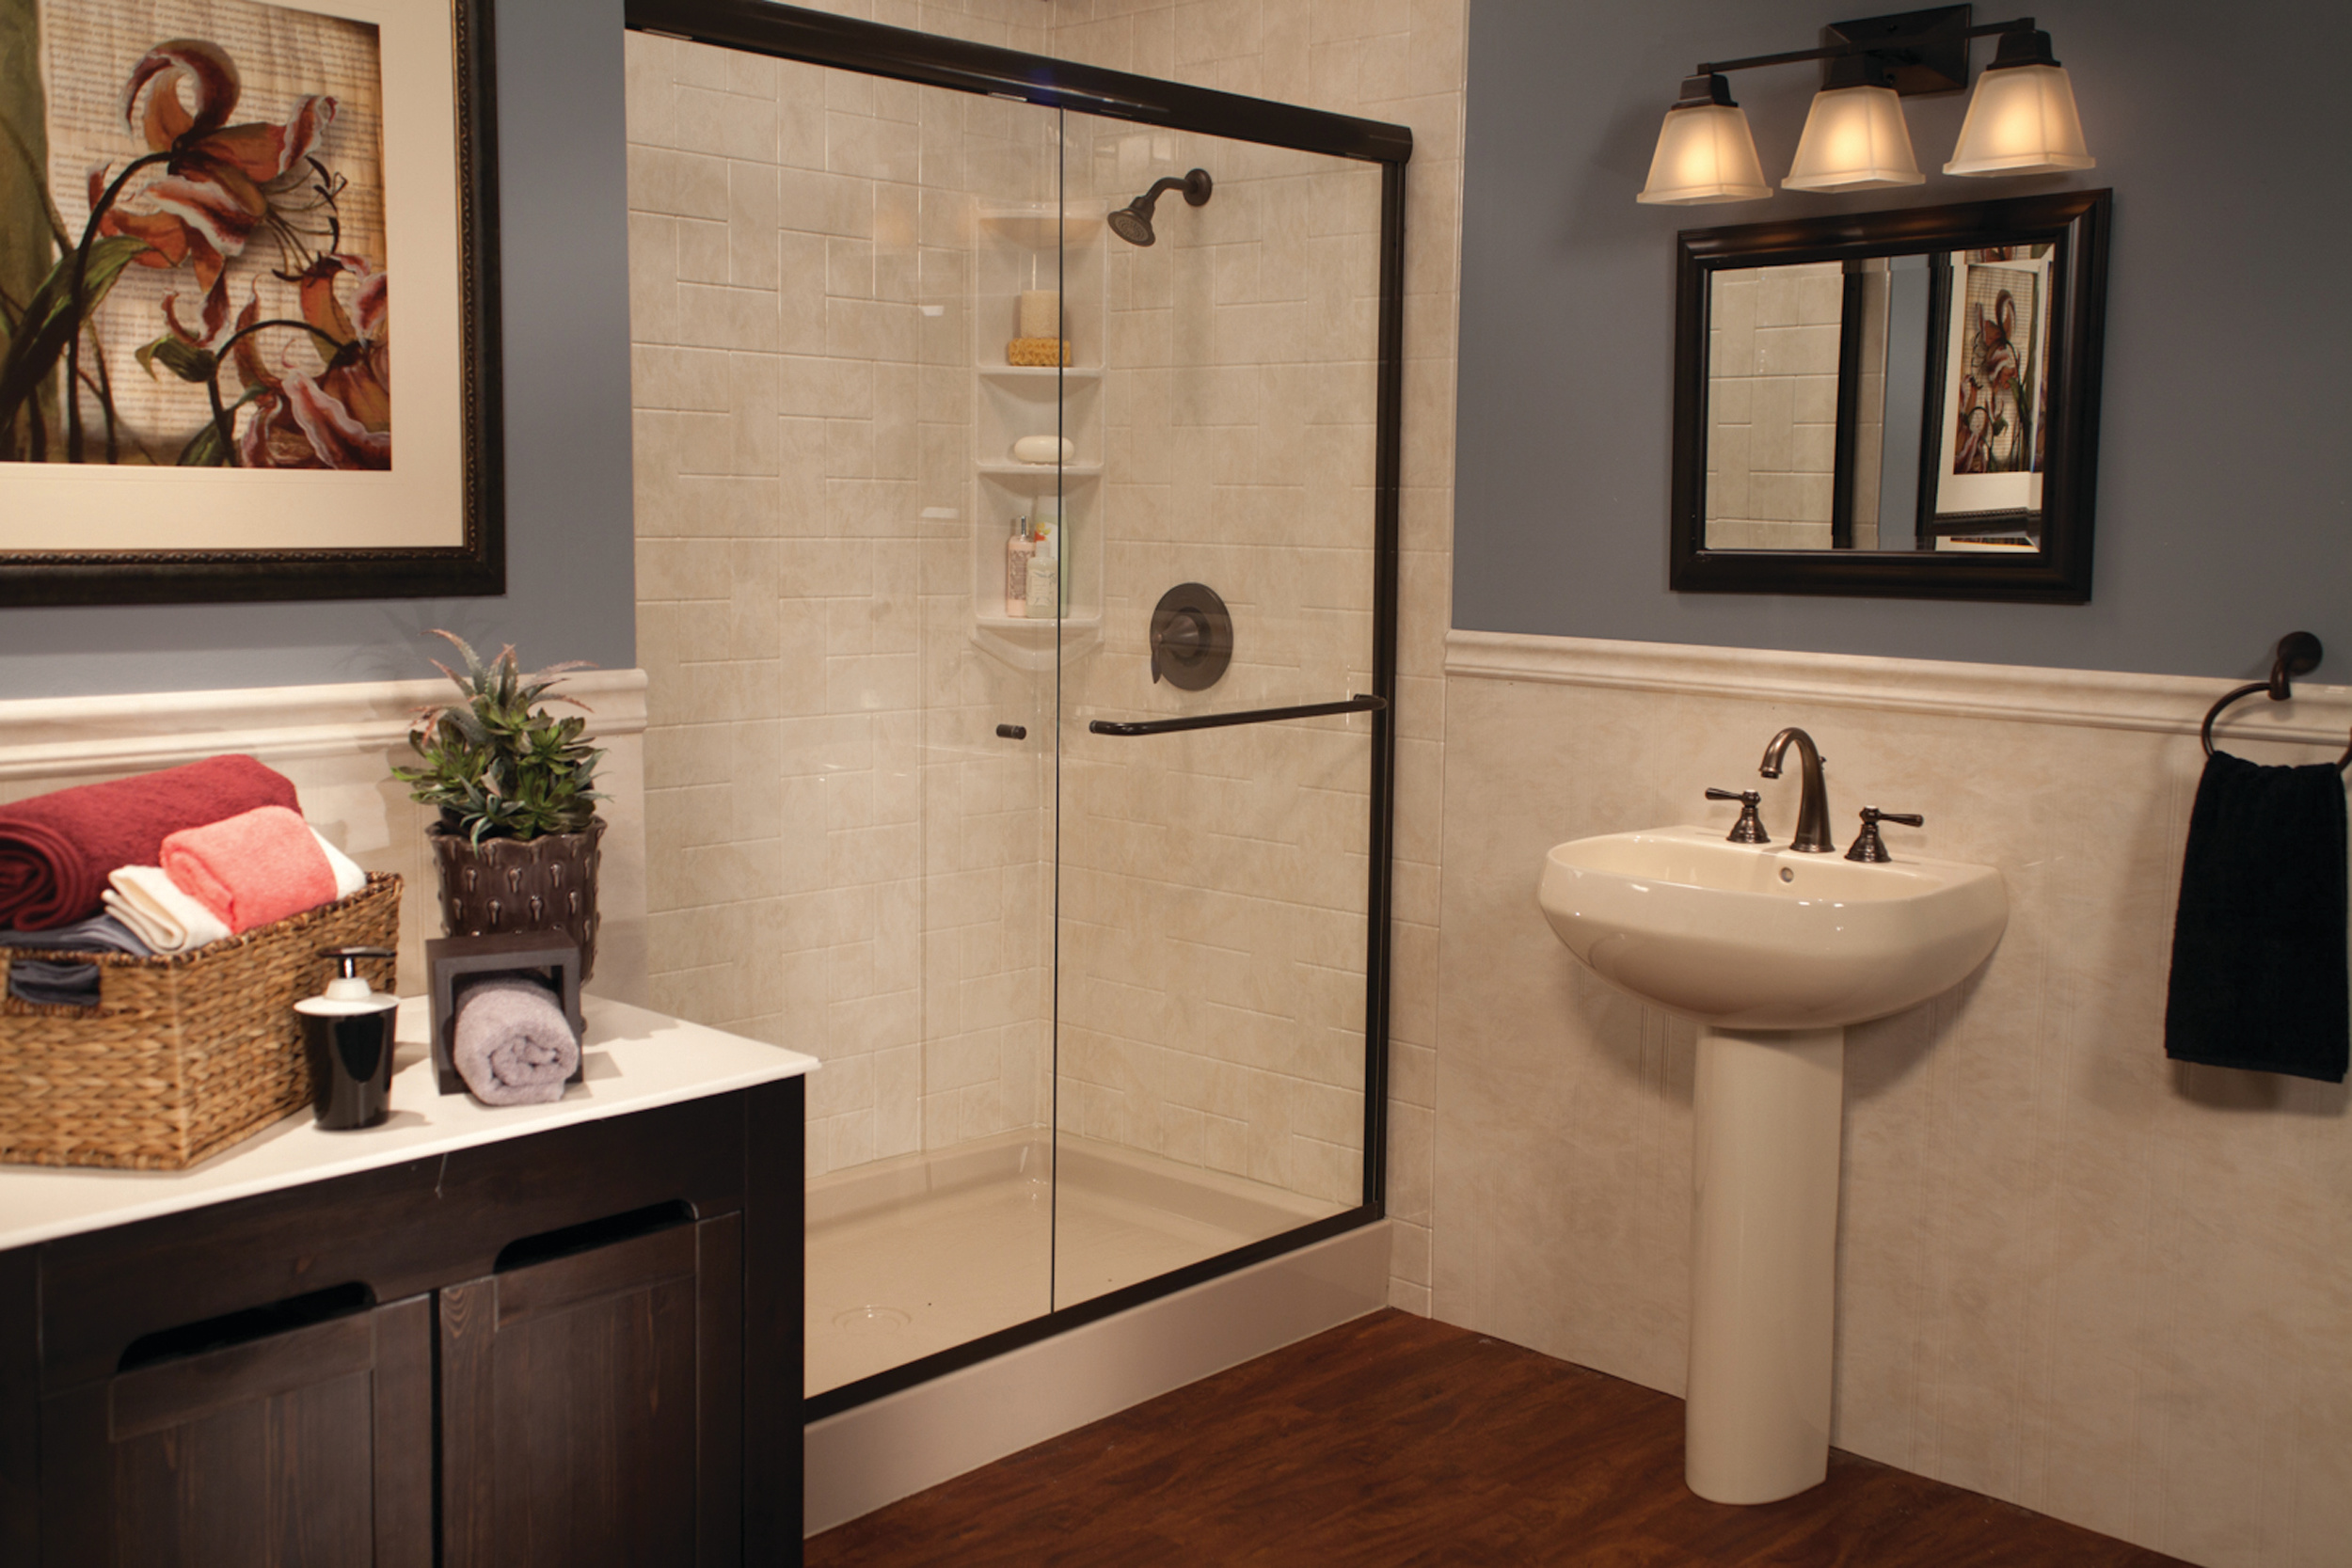 Almond_Shower_Base_Almond_White_Windmill_Tile_and_Wainscoting_Oil_Rubbed_Bronze_IMG_6350_HR_bci-329.